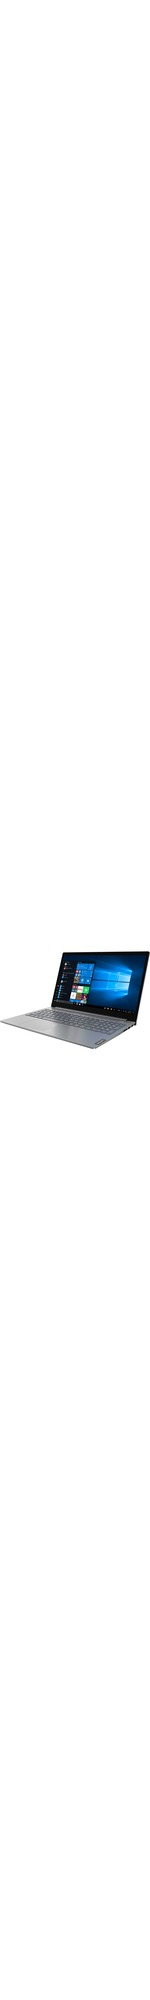 Lenovo ThinkBook 15-IIL 20SM001VUK 39.6 cm 15.6And#34; Notebook - 1920 x 1080 - Core i5 i5-1035G4 - 8 GB RAM - 256 GB SSD - Mineral Gray